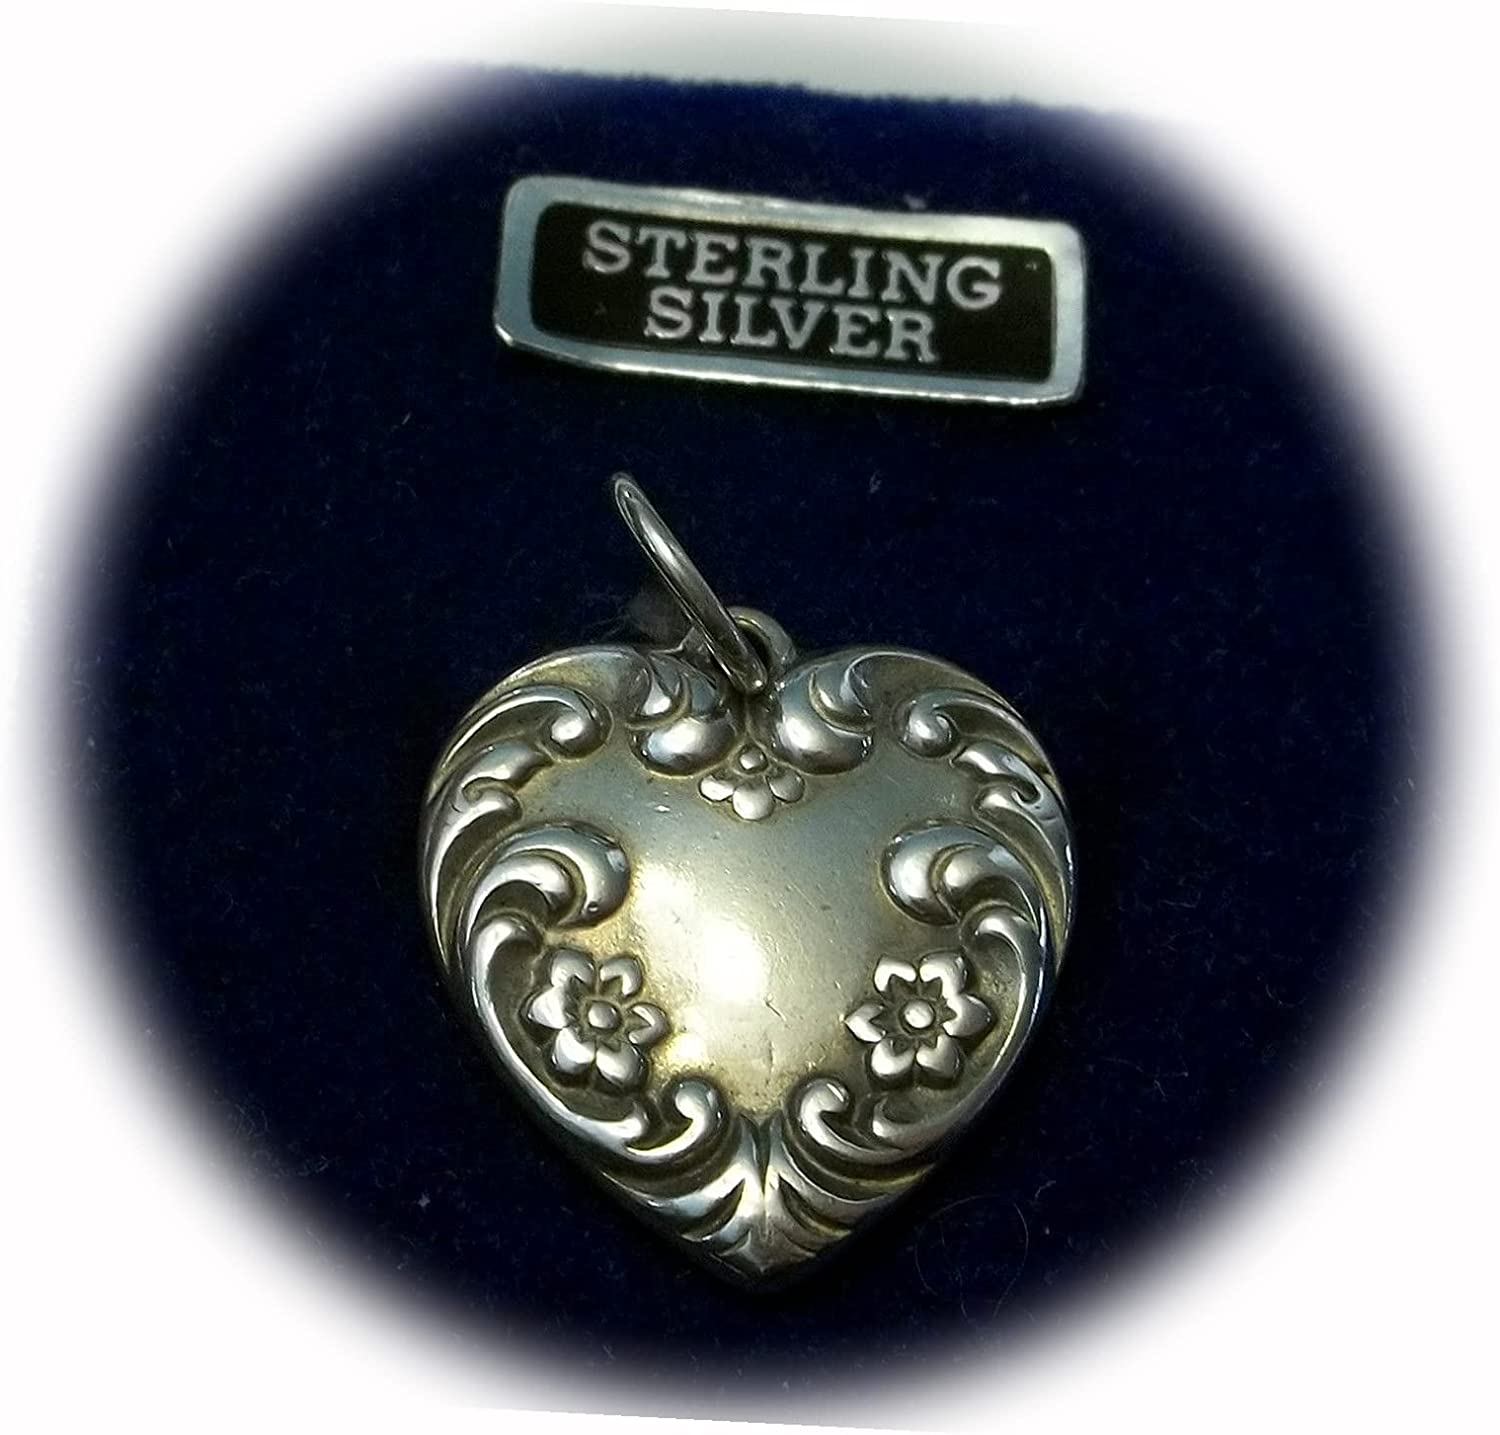 New Clearance Sterling Silver 21x19mm Very Pretty Year-end annual account Decorate Special price Large